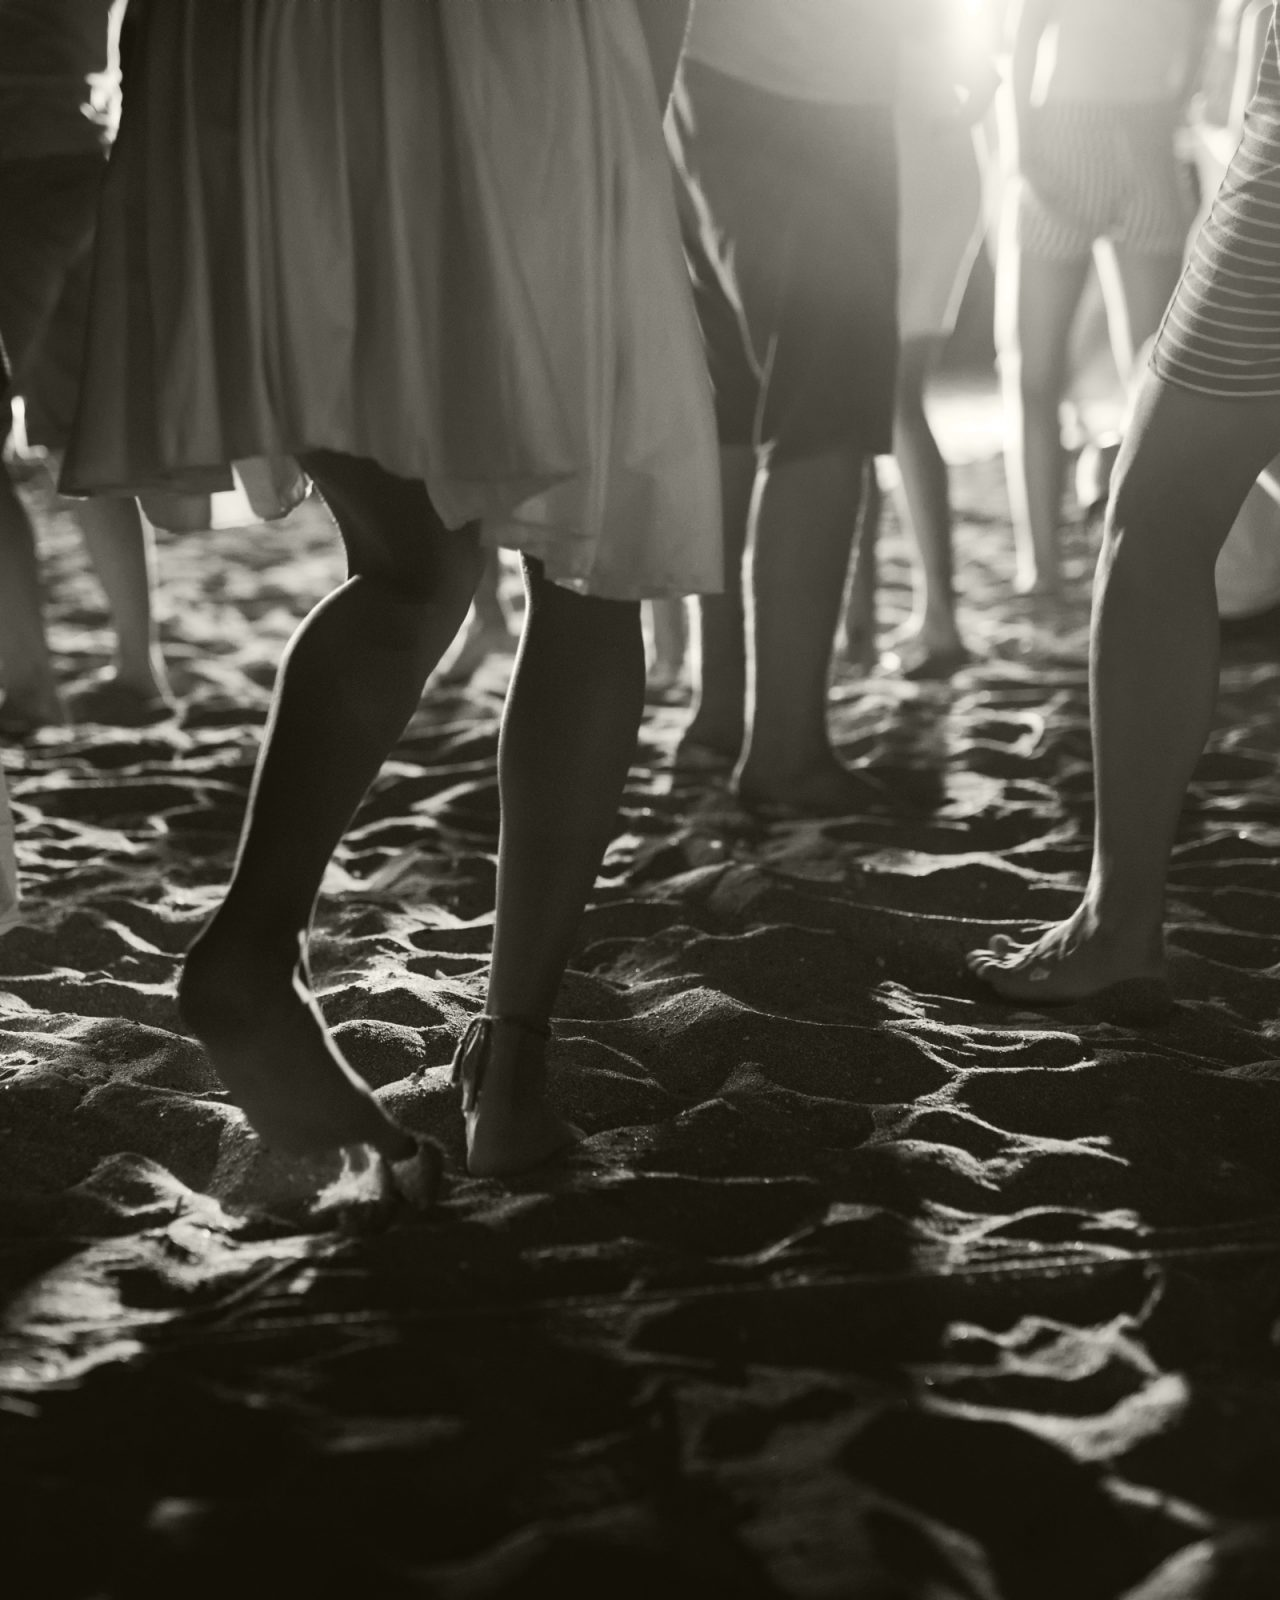 Black and white closeup of people's legs at a nighttime beach dance party